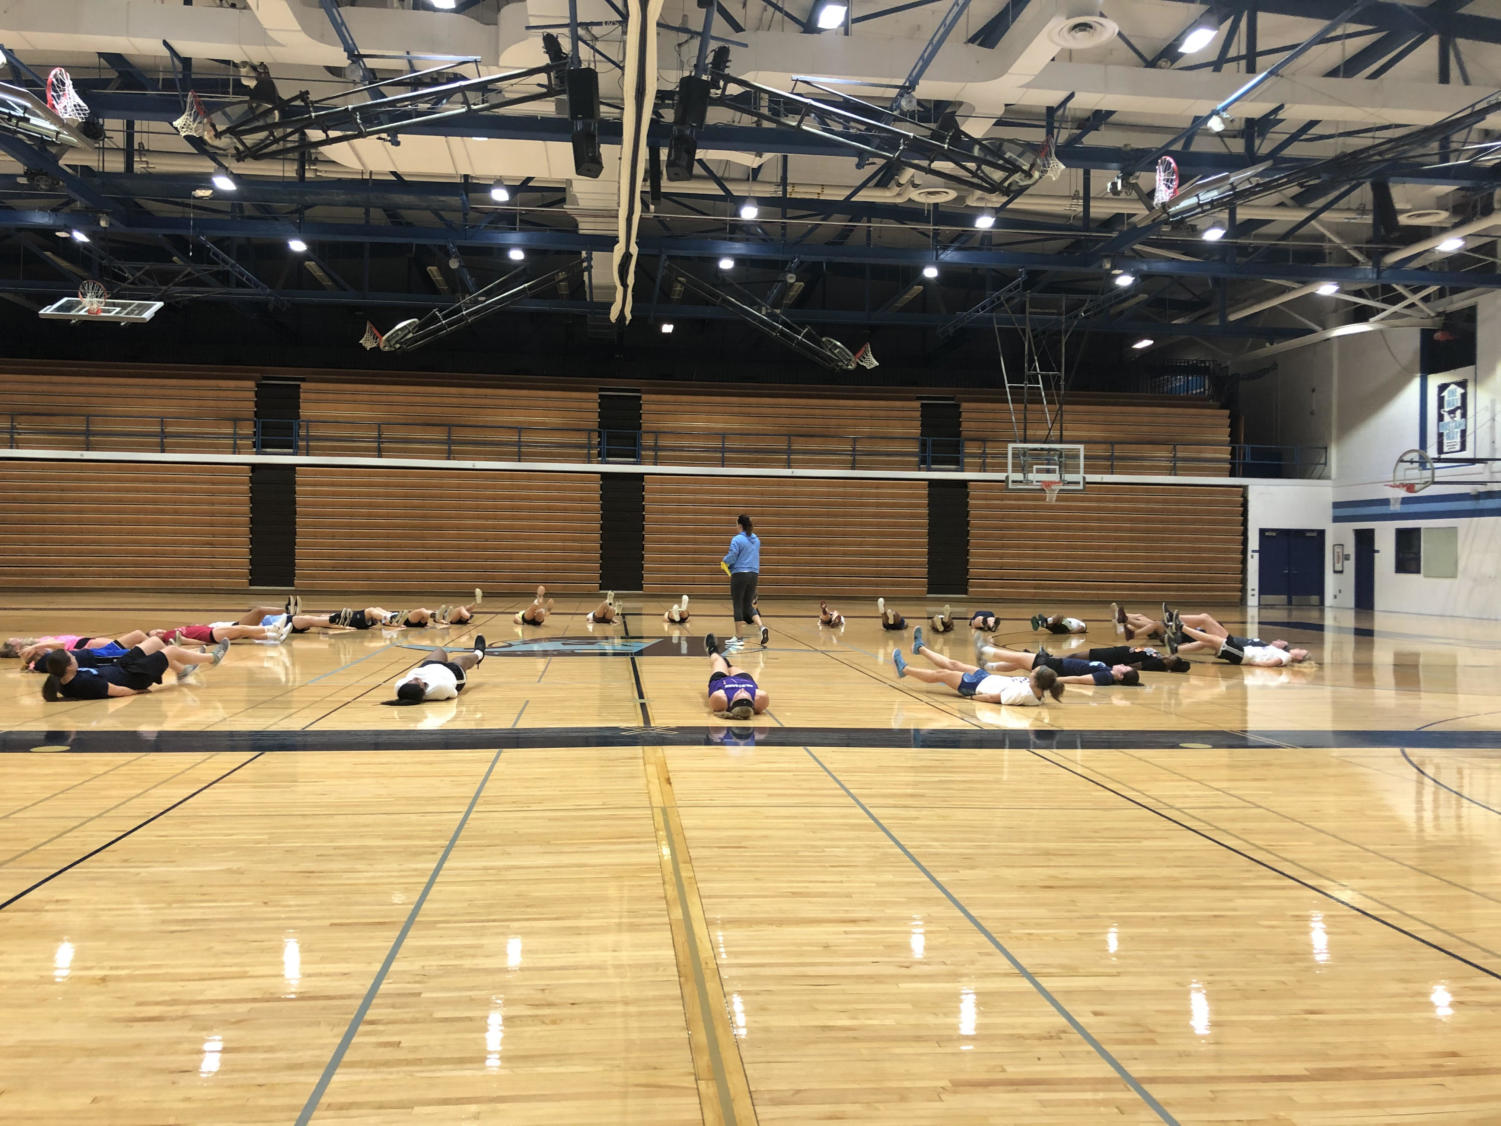 The girls varsity basketball team is preparing for their upcoming season with intense workouts, such as working on their core and endurance. The rigorous training will hopefully help them recover from losing two of their key players.